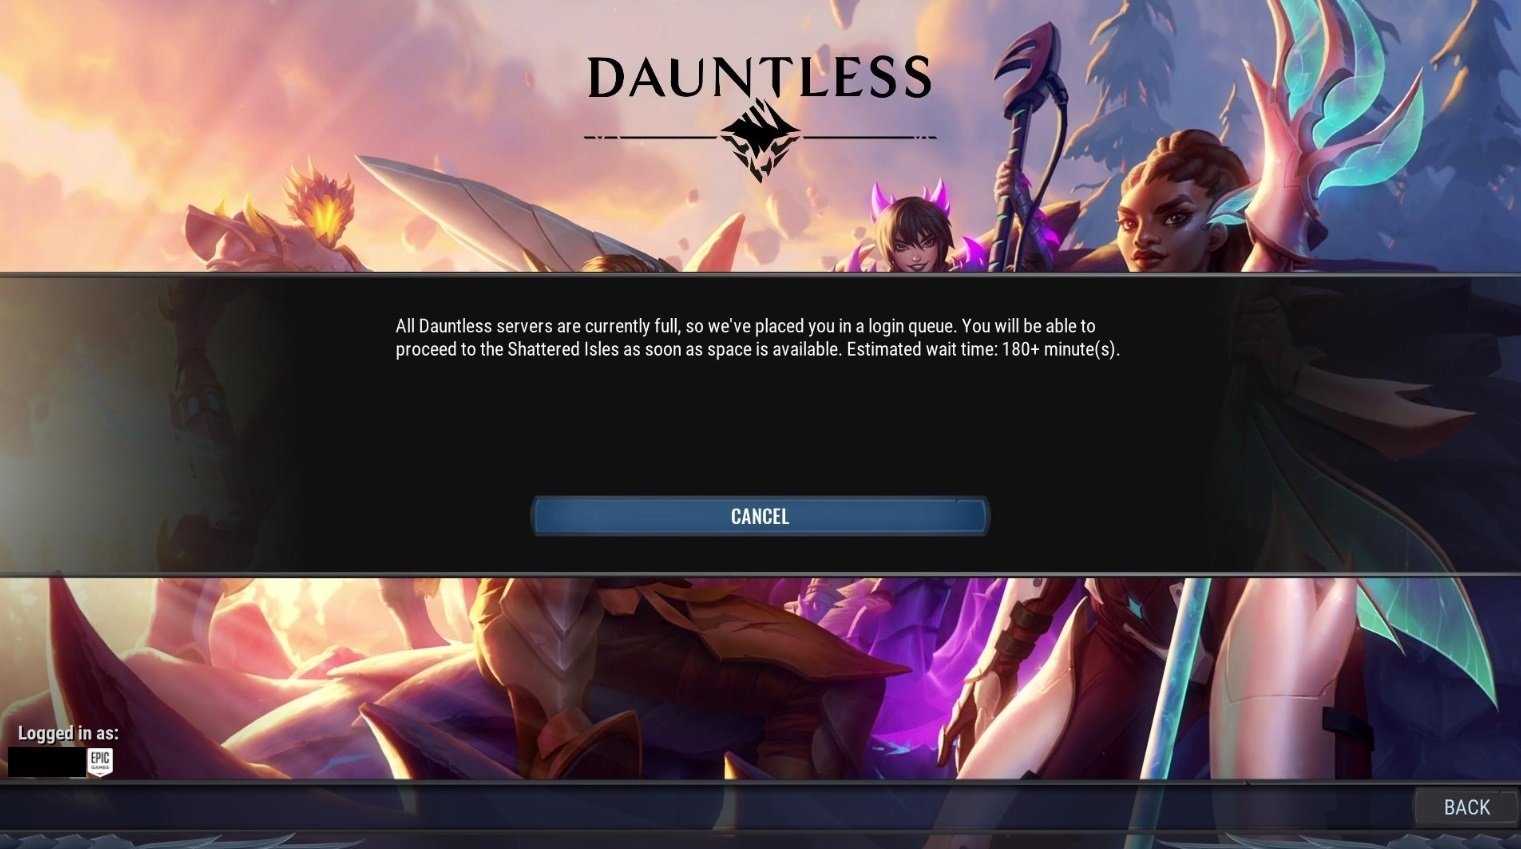 Dauntless servers full